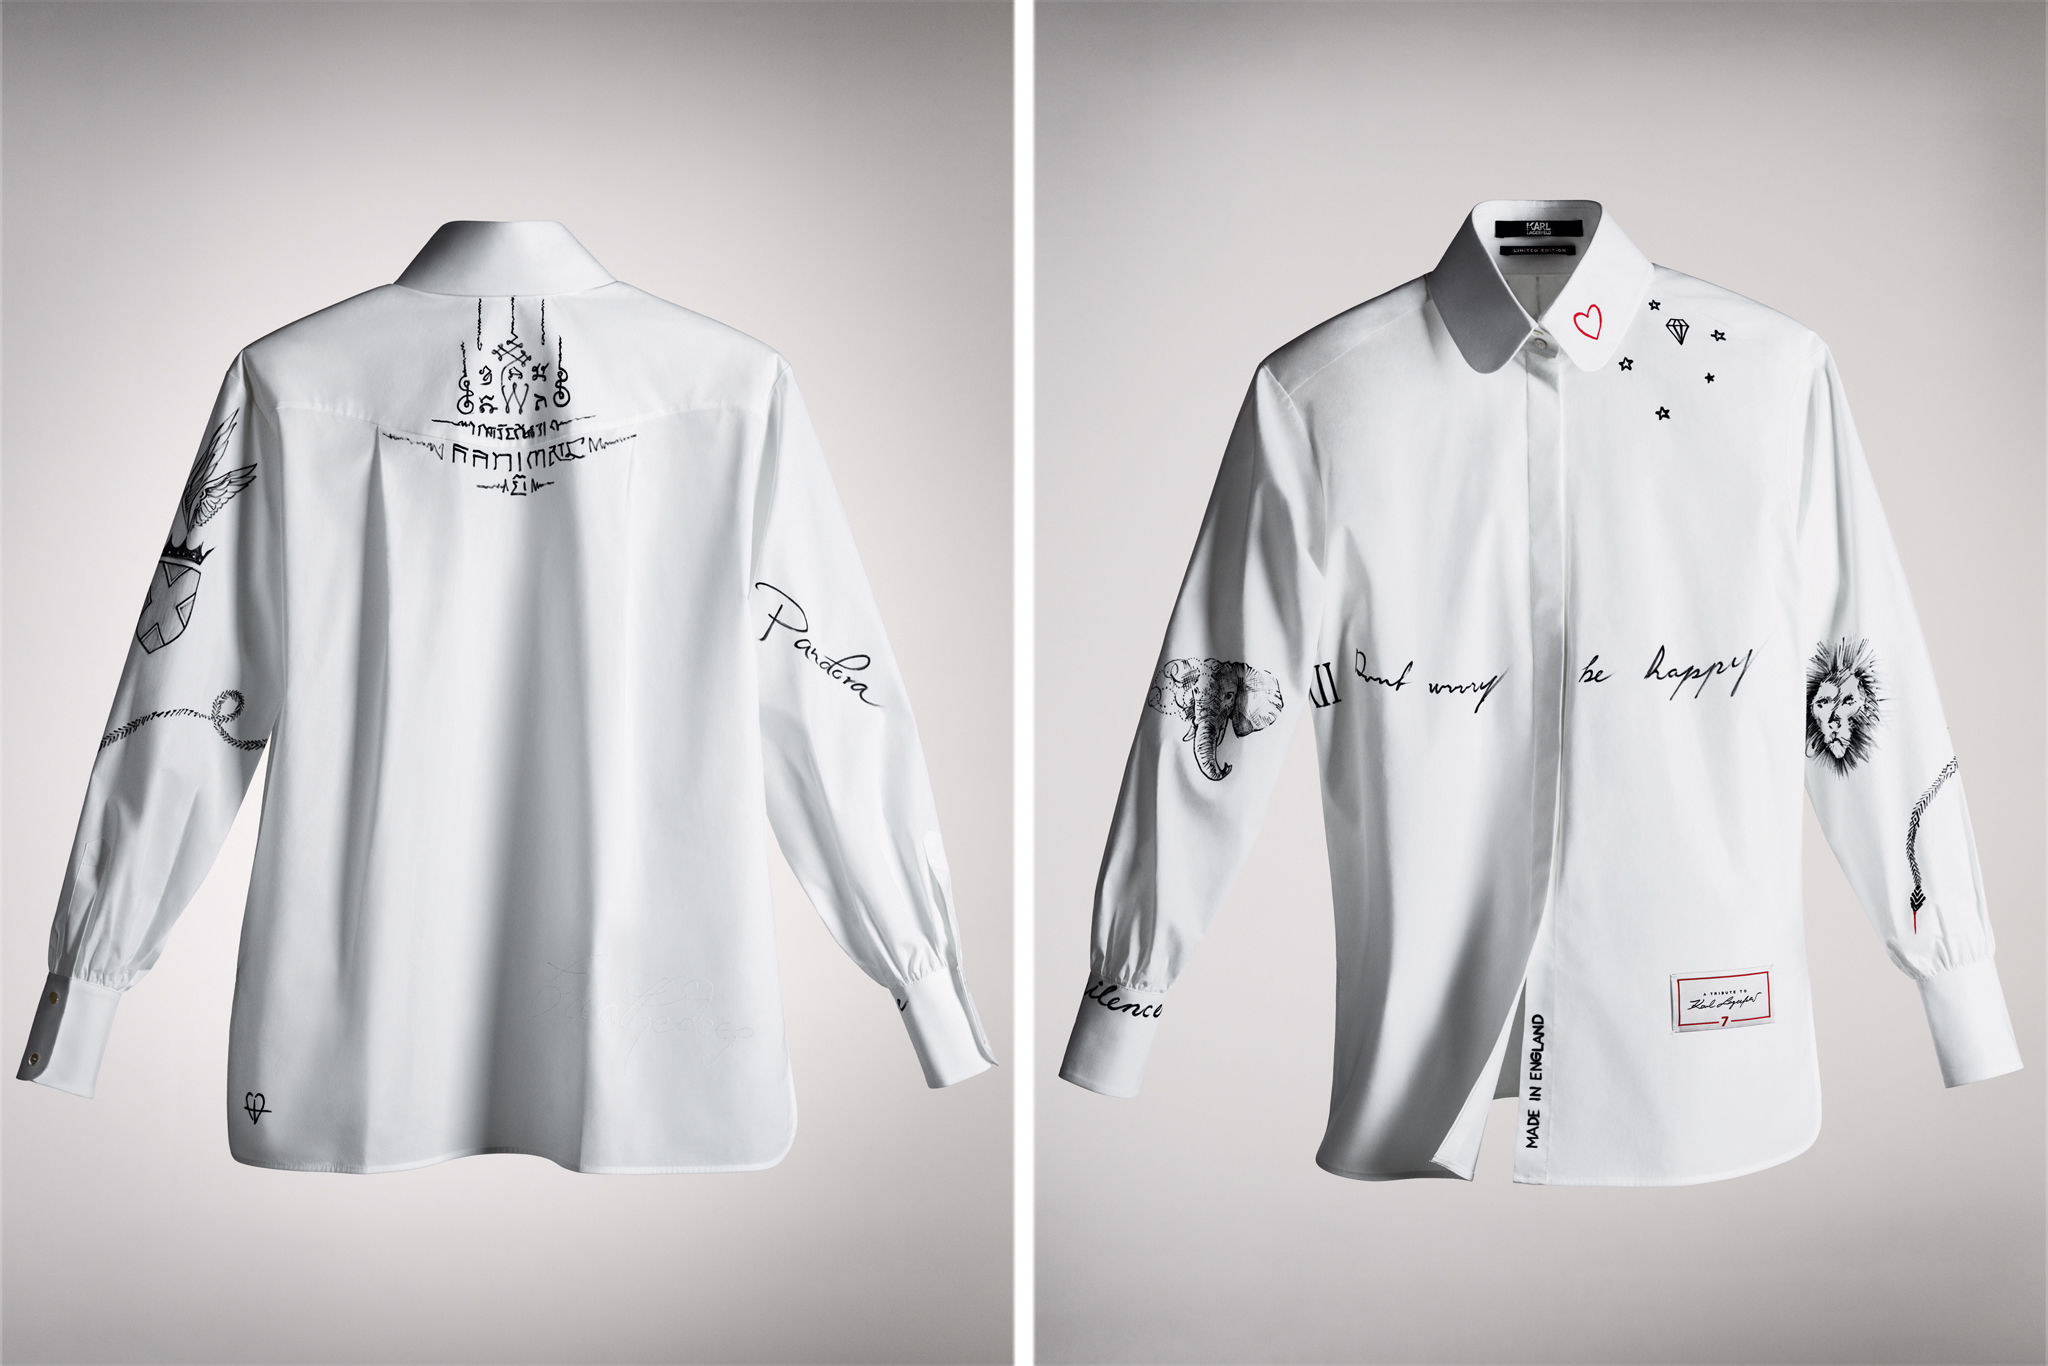 The shirt designed by Cara Delevingne, featuring her tattoos